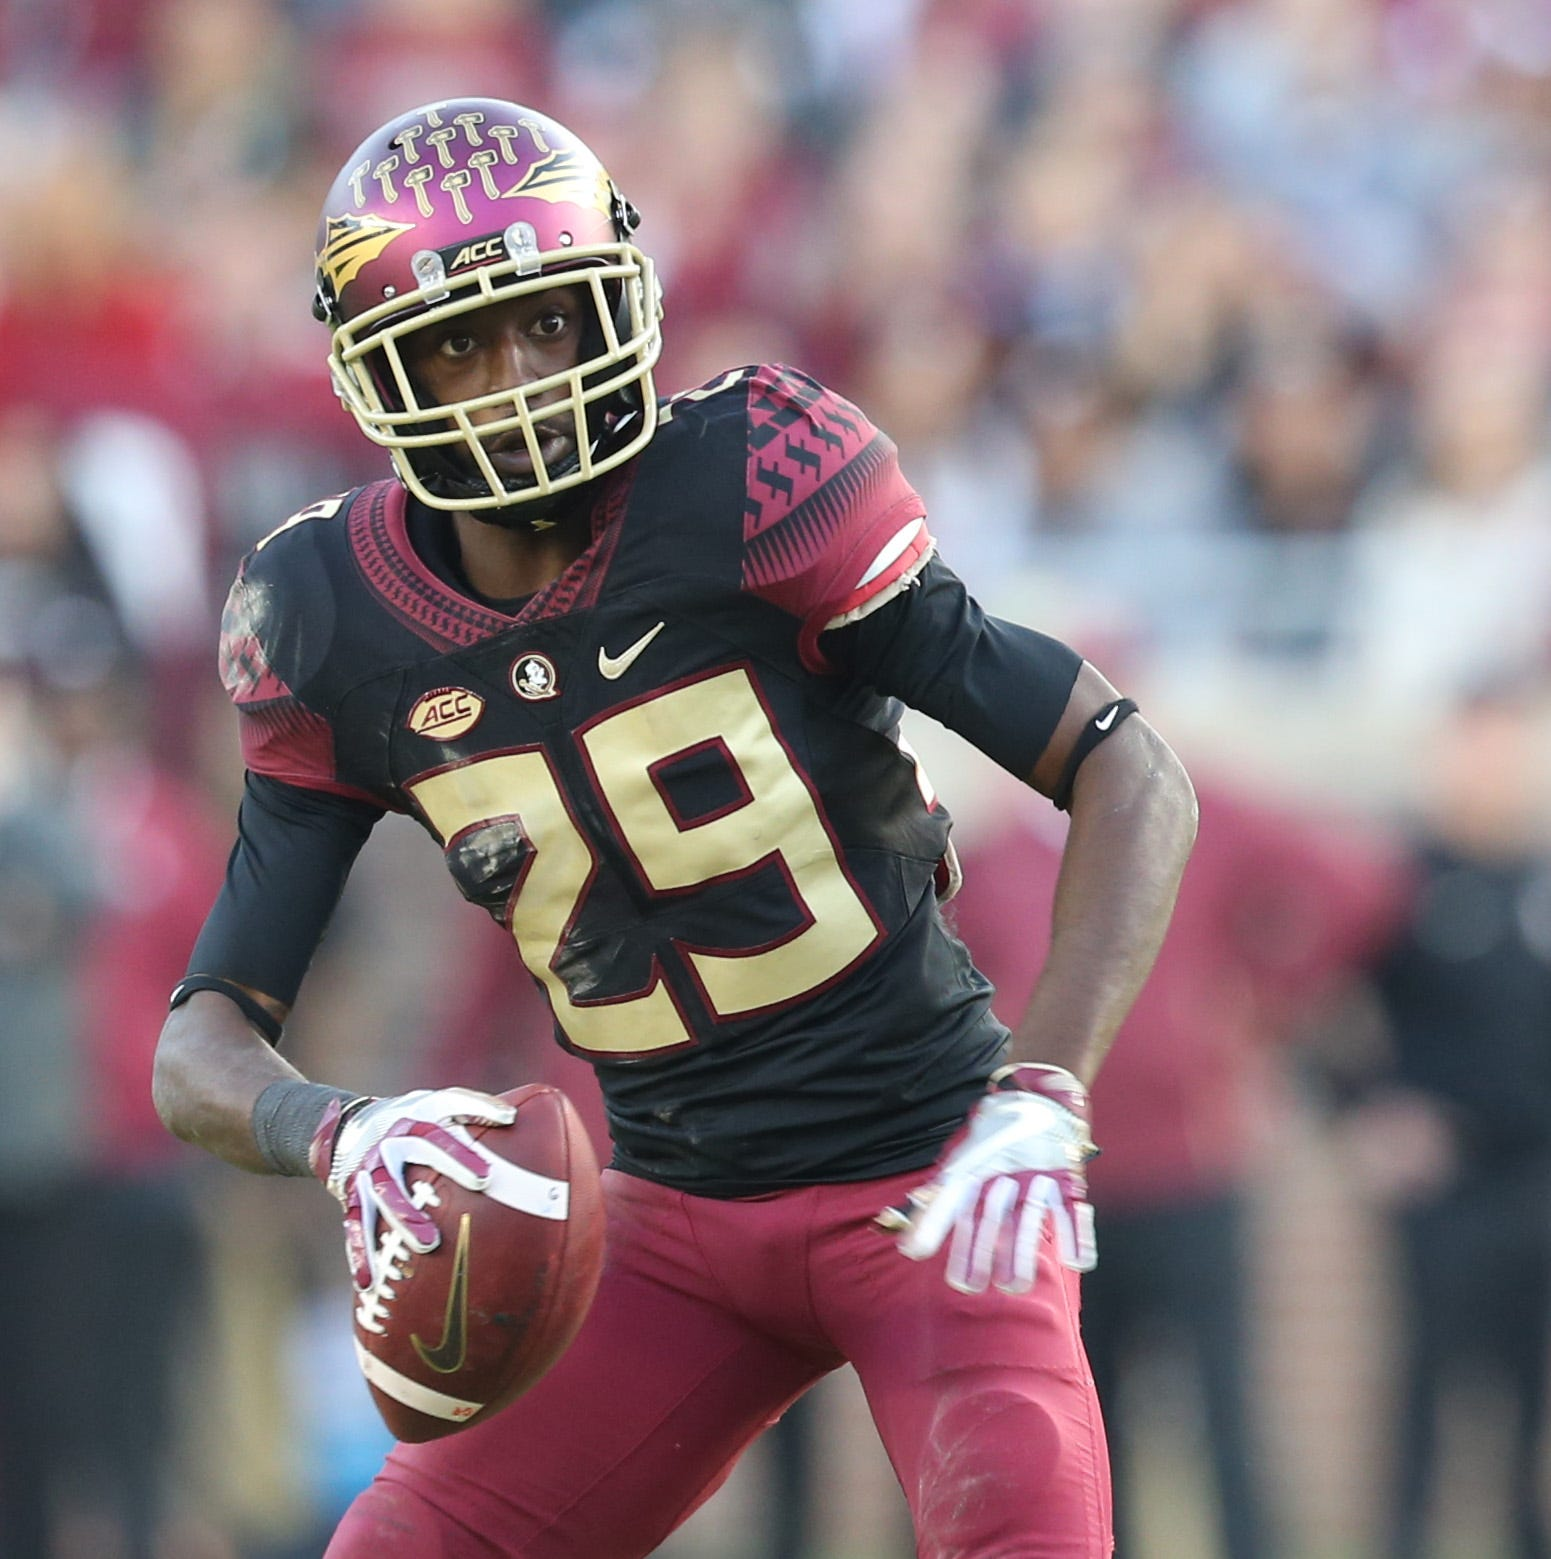 Revamped attitude earns D.J. Matthews Florida State's 'Most Improved' tag